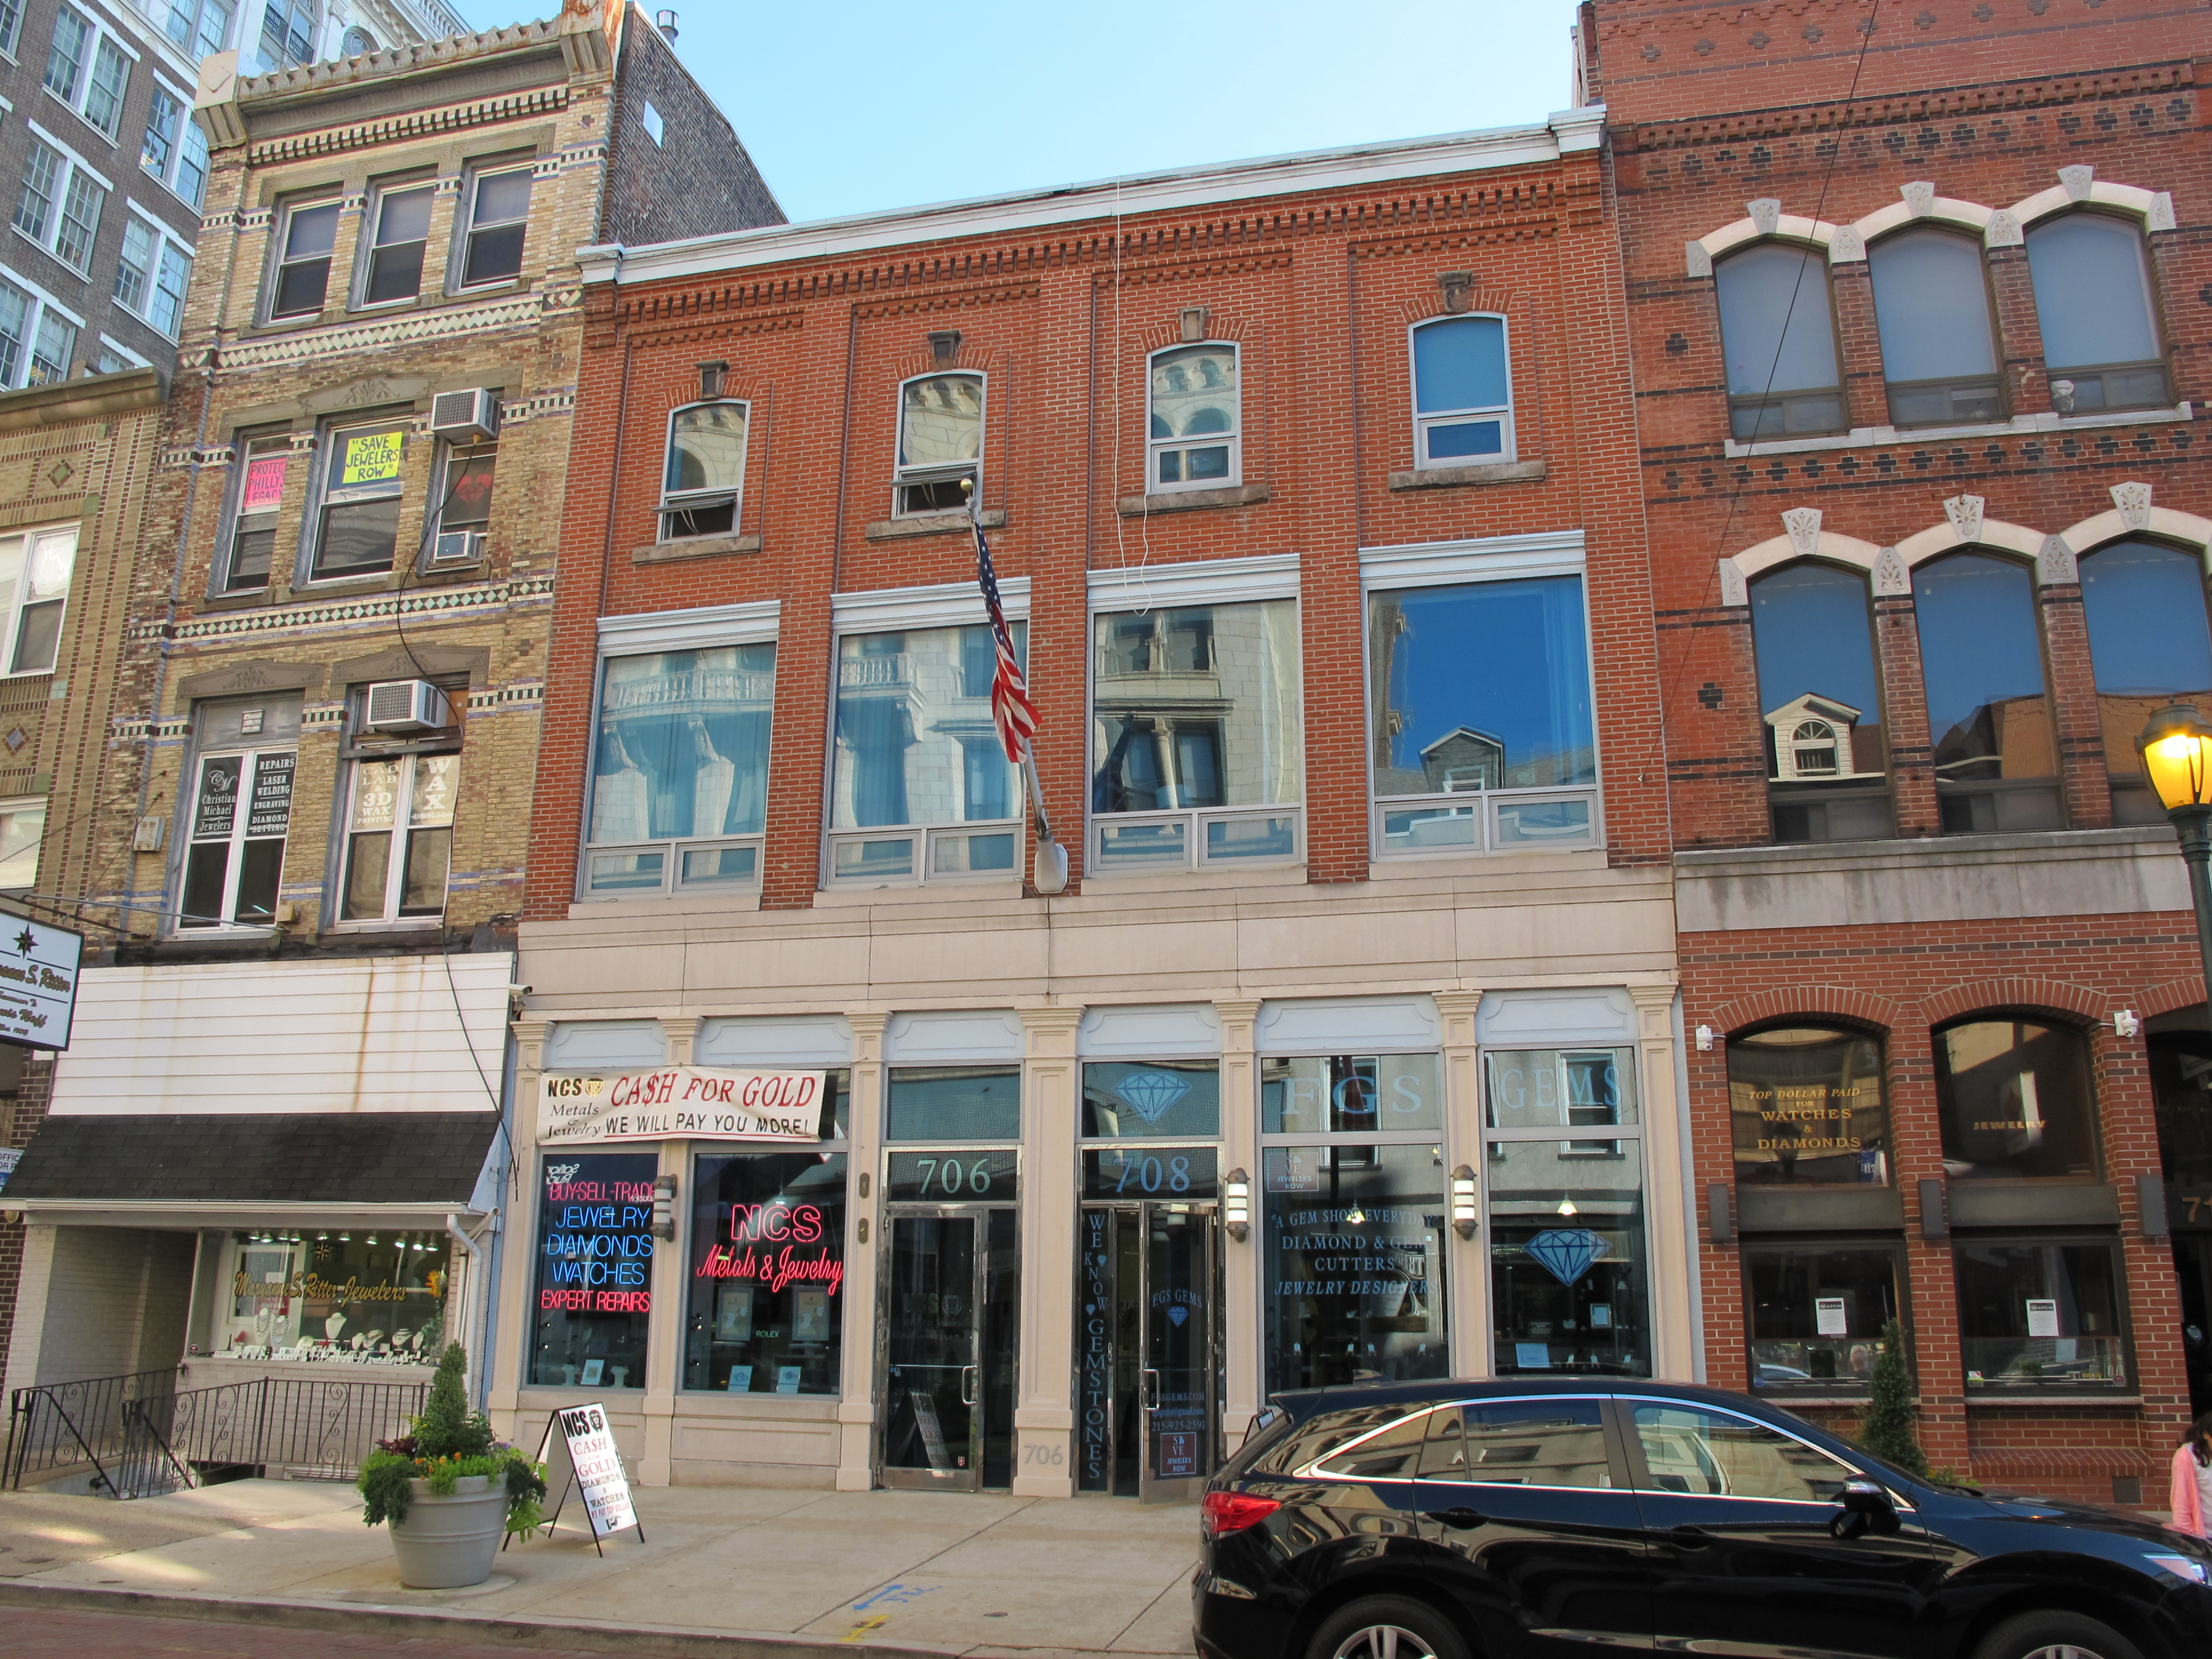 Jewelers' Row (704-708 Sansom St.), as it appeared in September 2016.